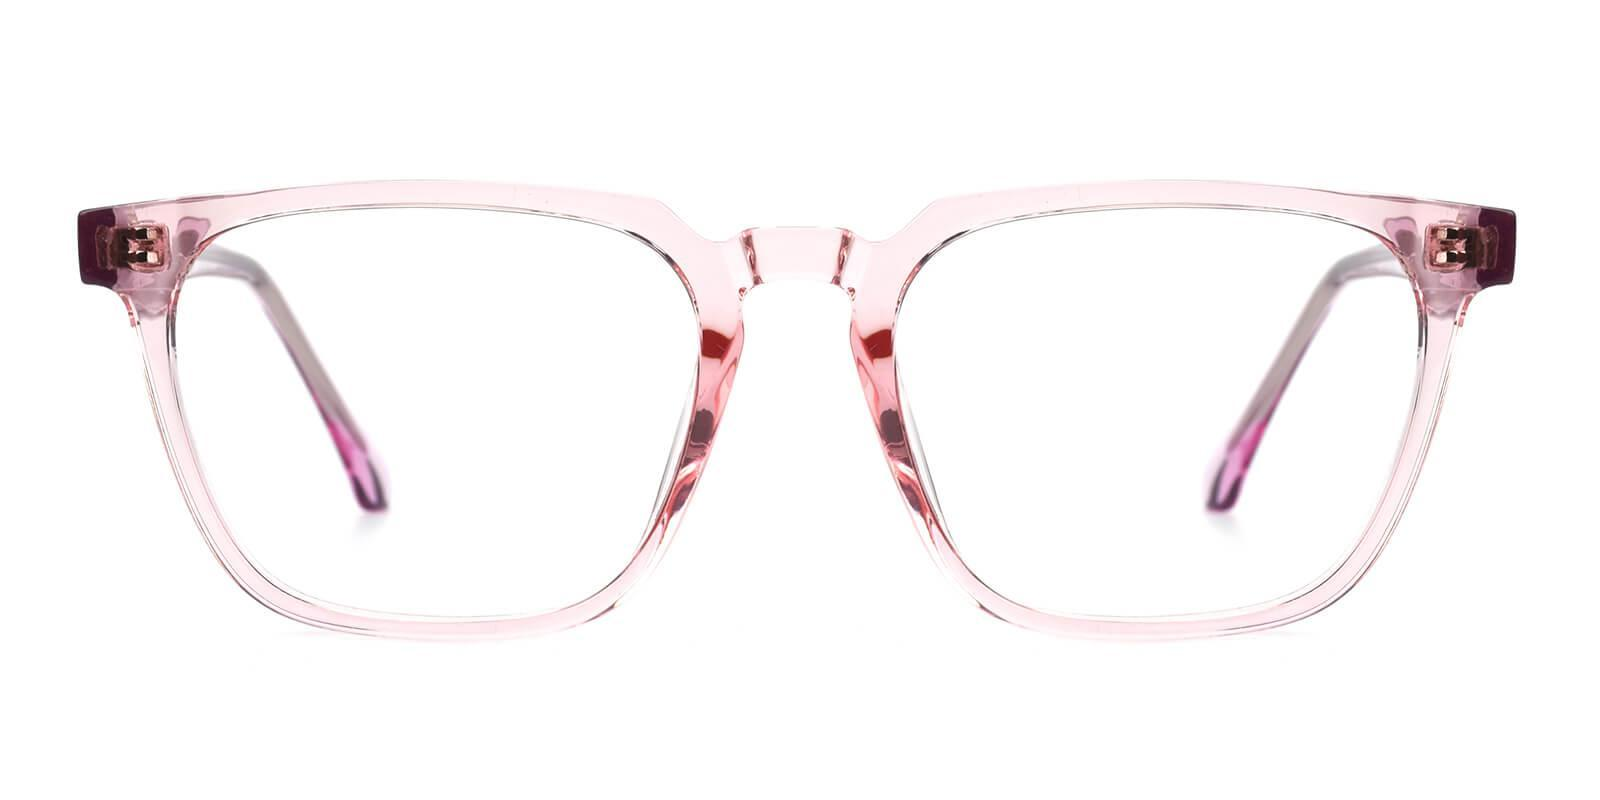 Oriana Pink Acetate Eyeglasses , SpringHinges , UniversalBridgeFit Frames from ABBE Glasses